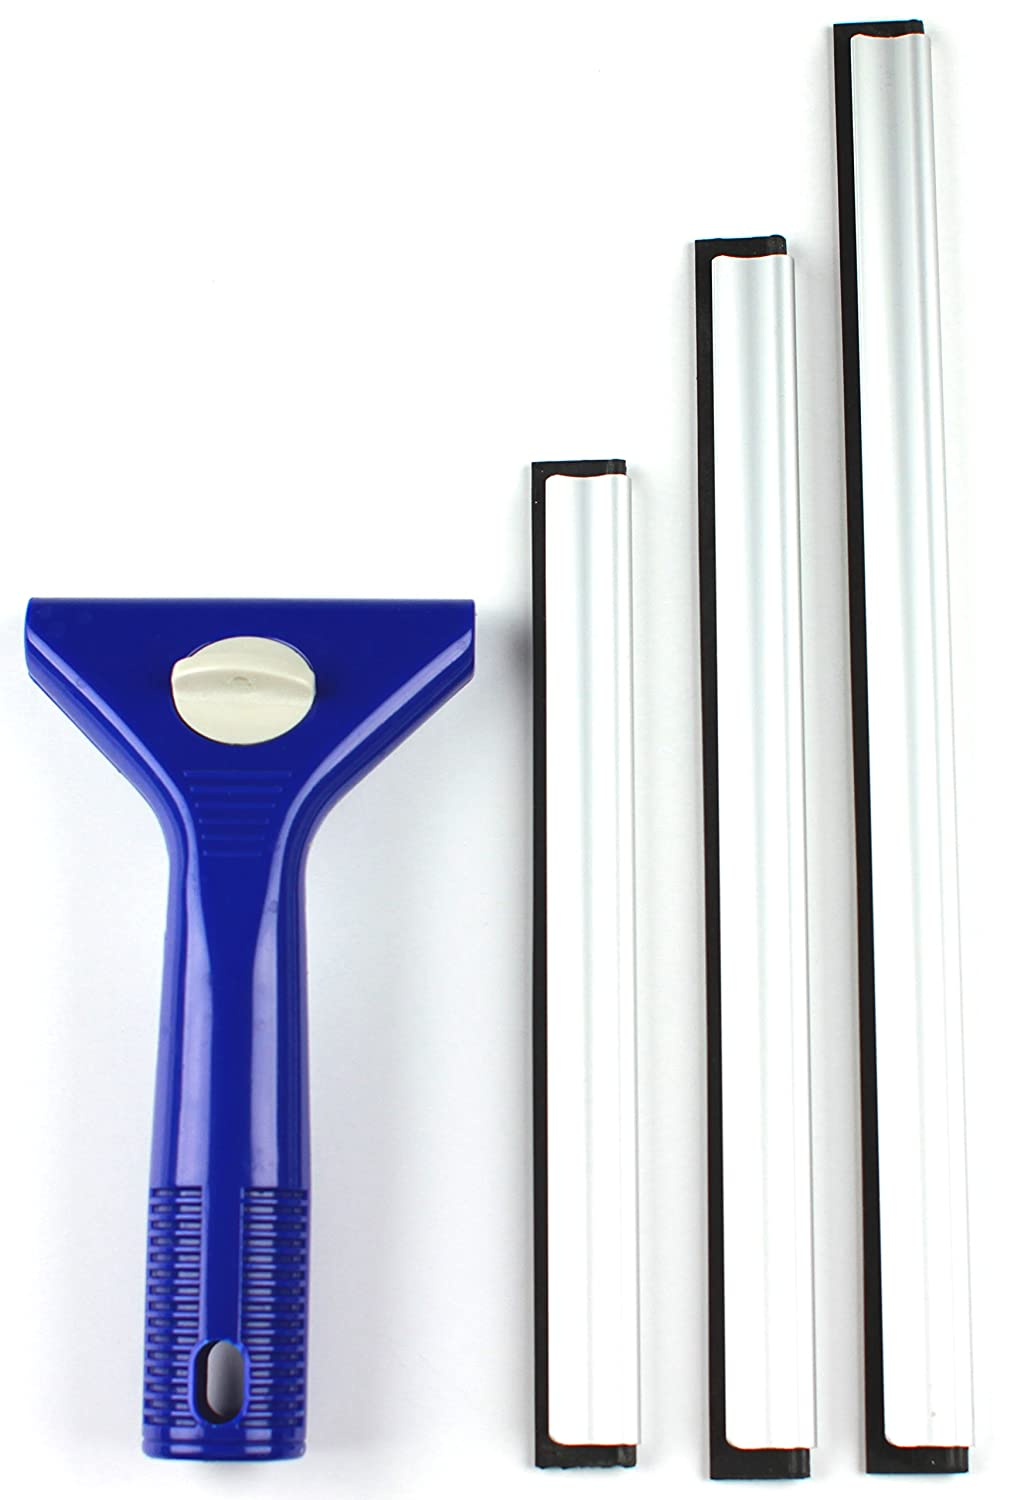 Jet Clean Easy Squeegee 3-Size Pro-All Purpose for Washing Glass